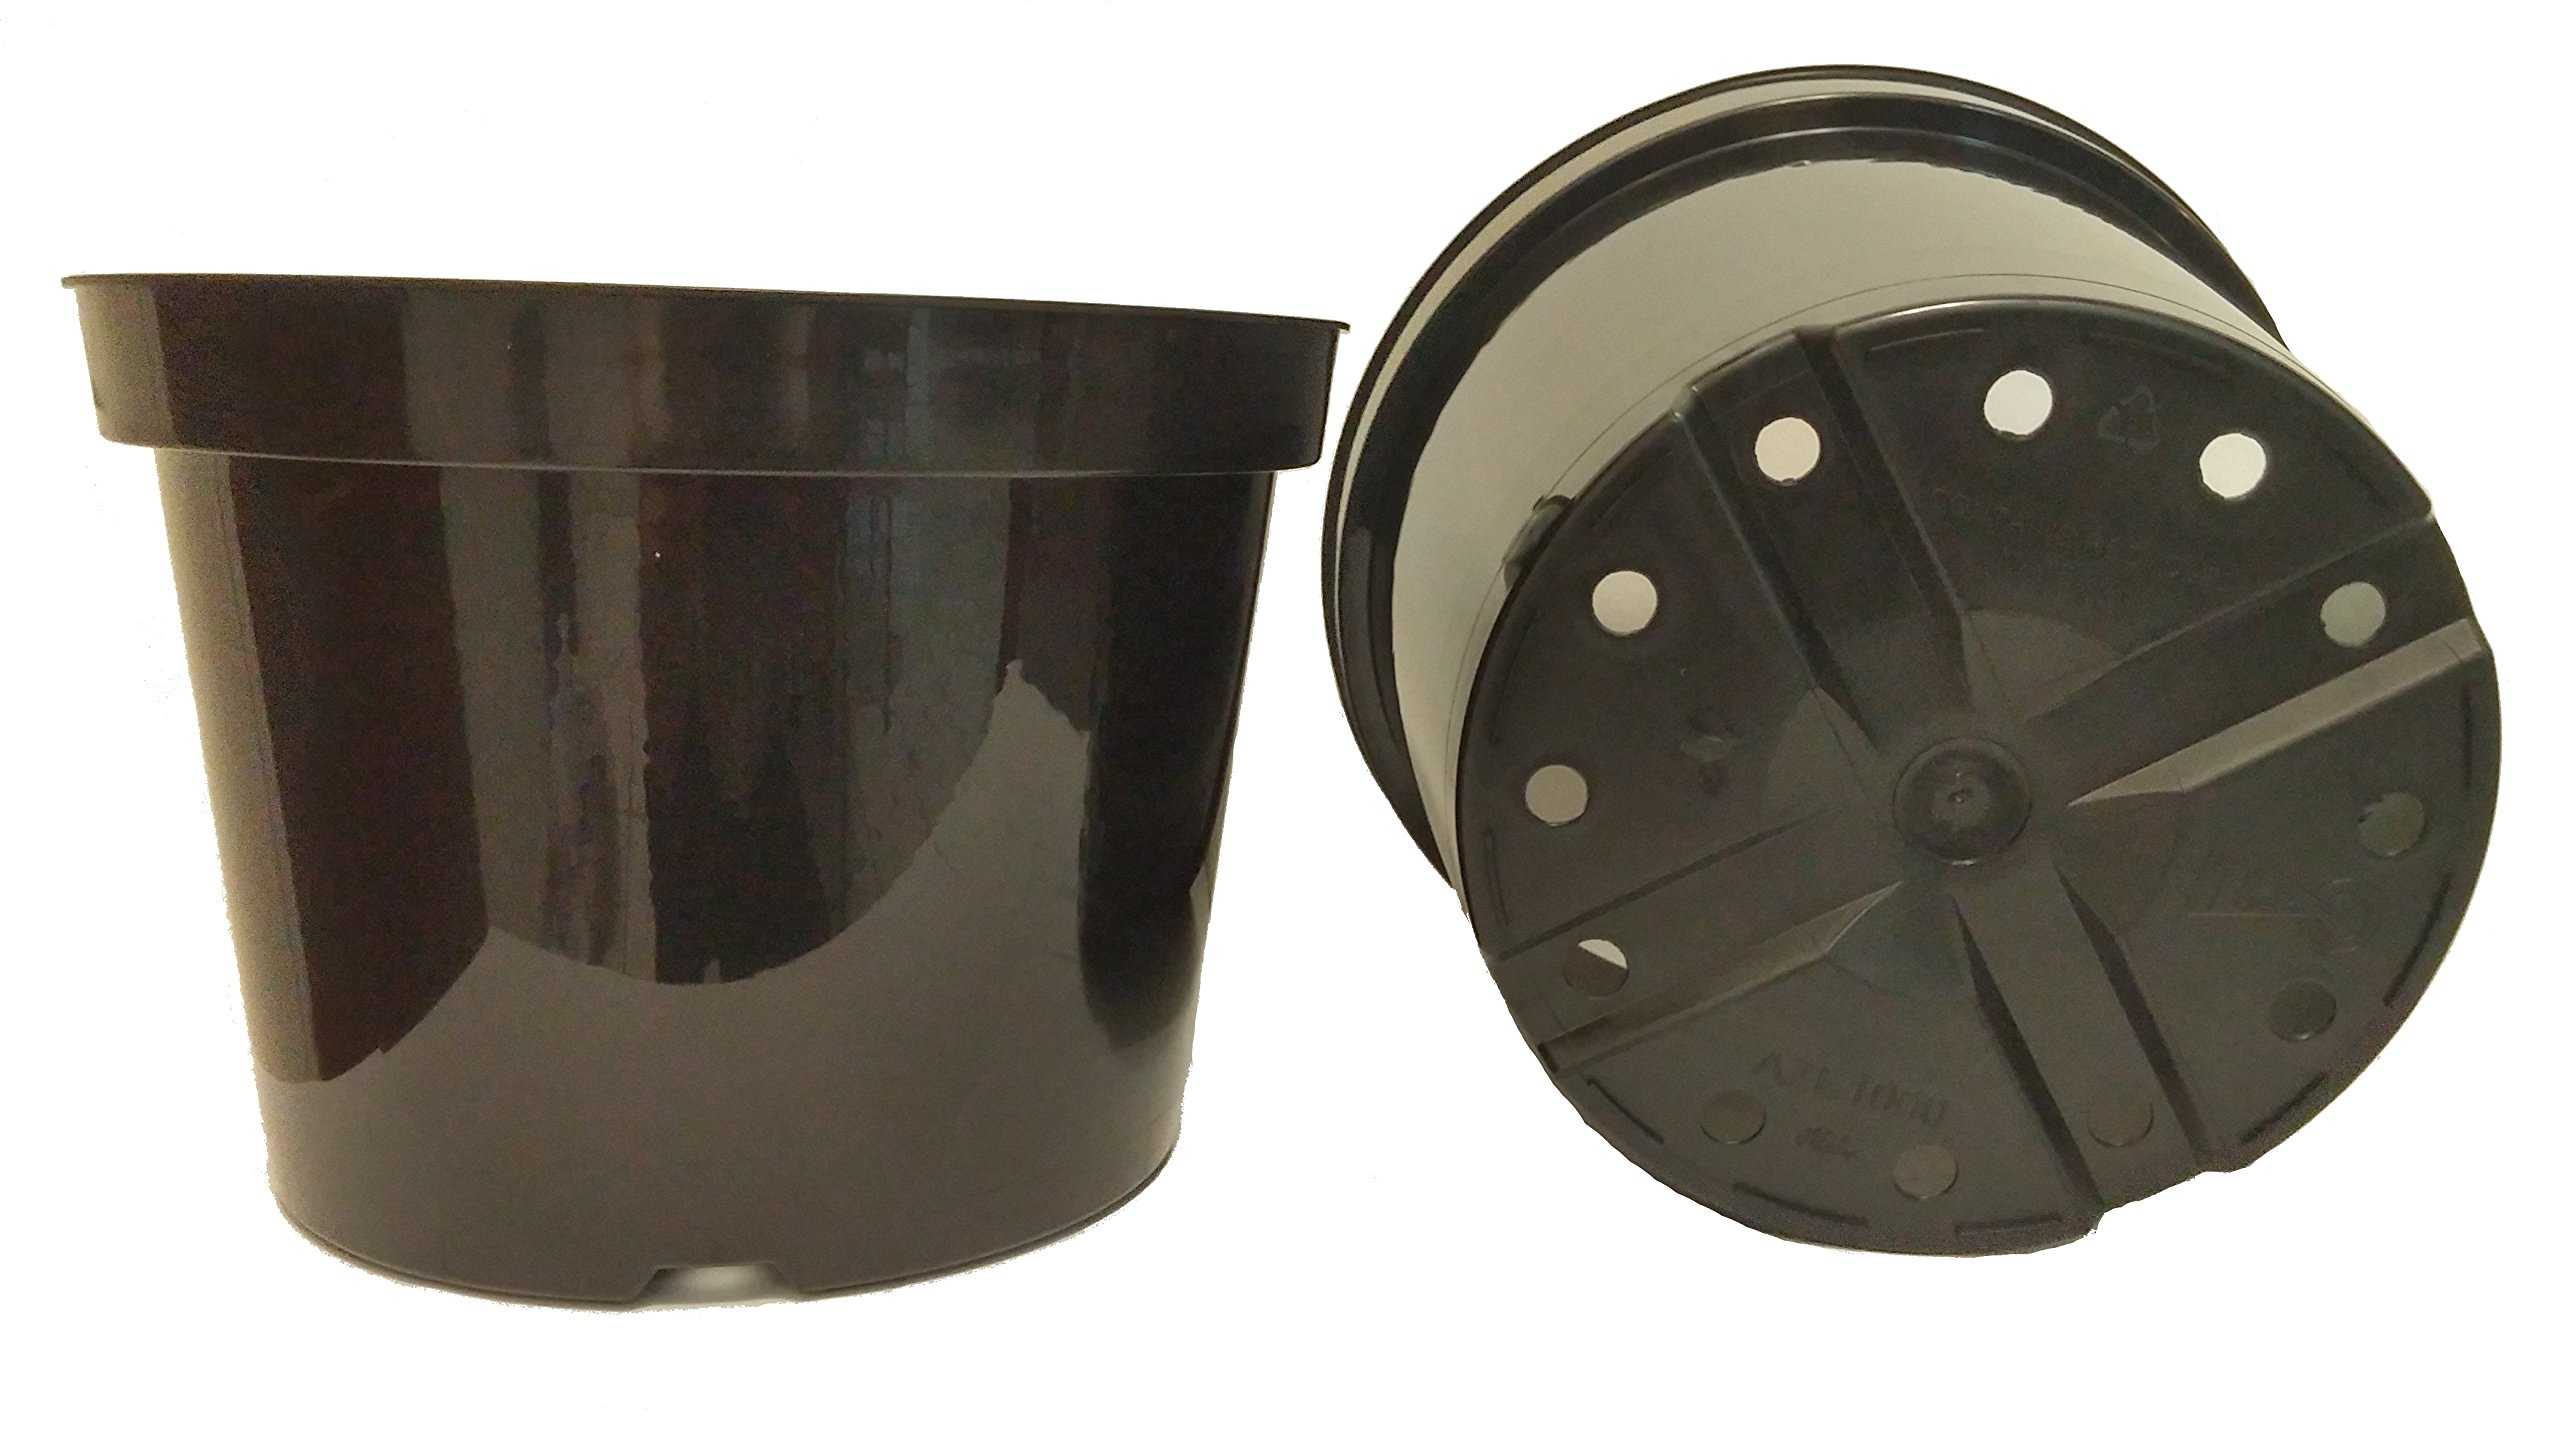 12 NEW 10 Inch Azalea Plastic Nursery Pots ~ Pots are 10 Inch Round At the Top and 7.3 Inch Deep. Color Black